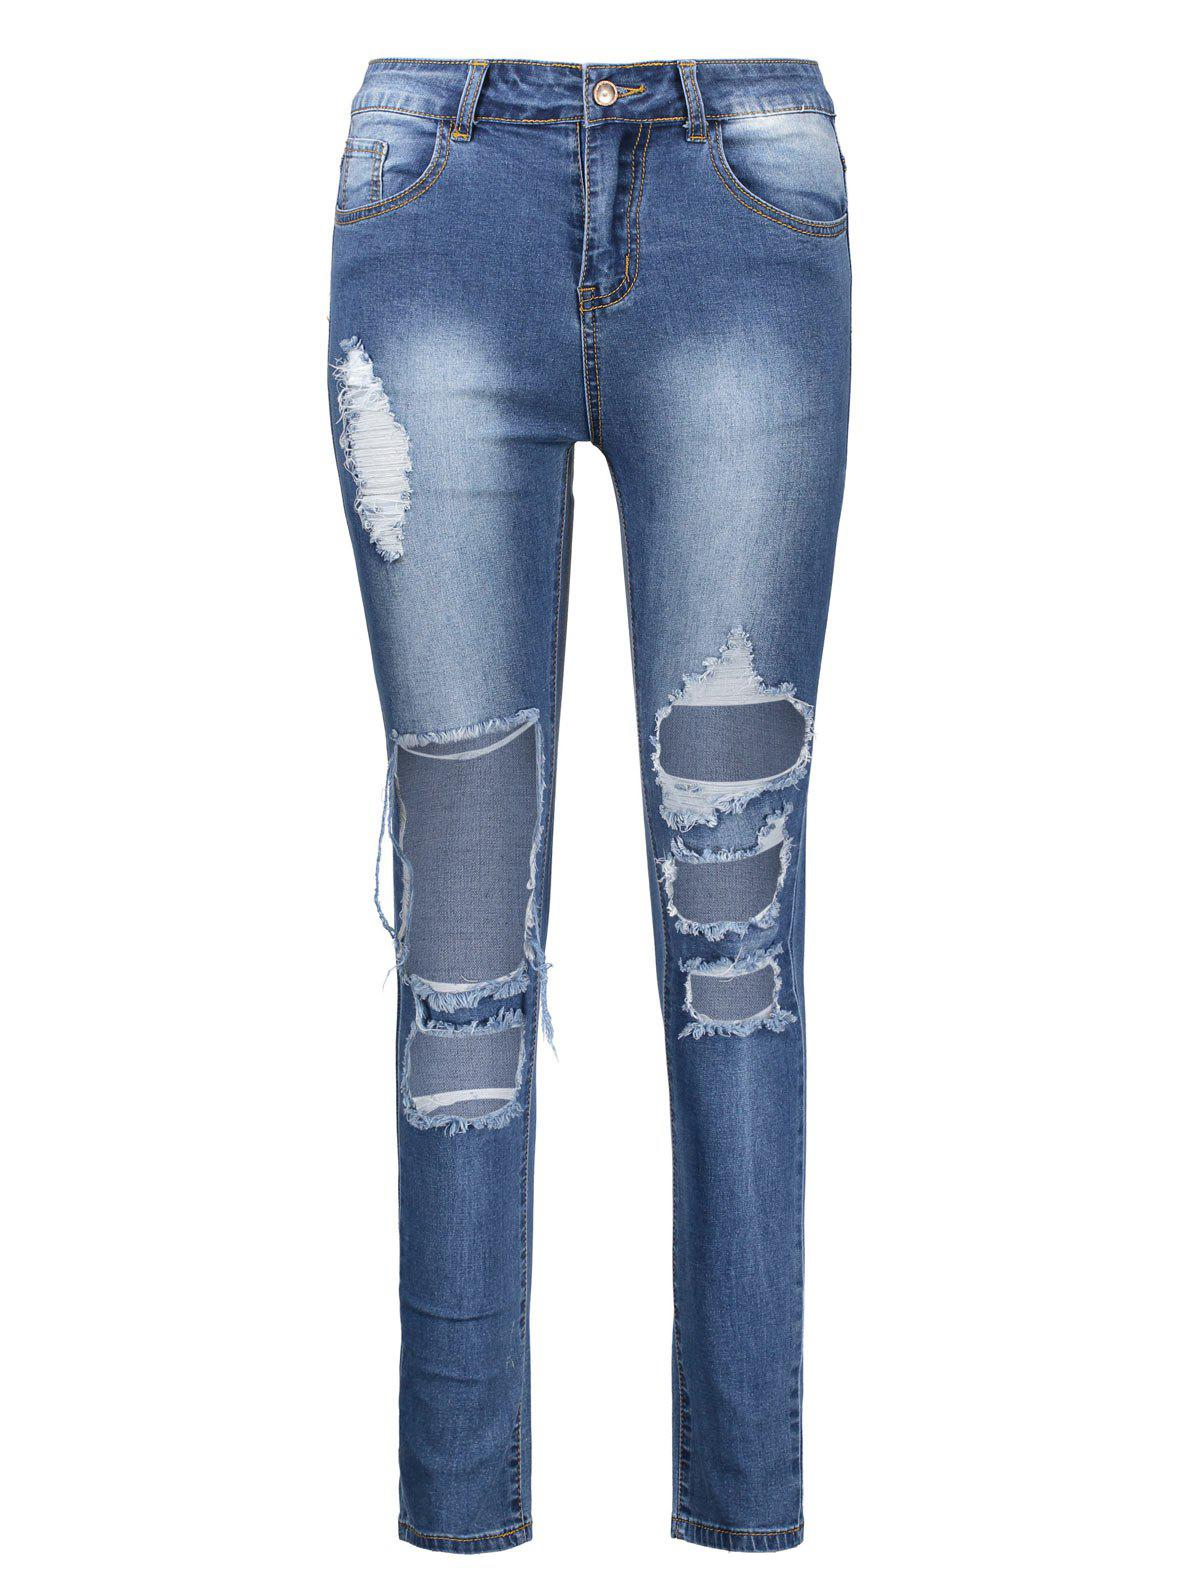 New Ankle Length High Waisted Skinny Ripped Jeans